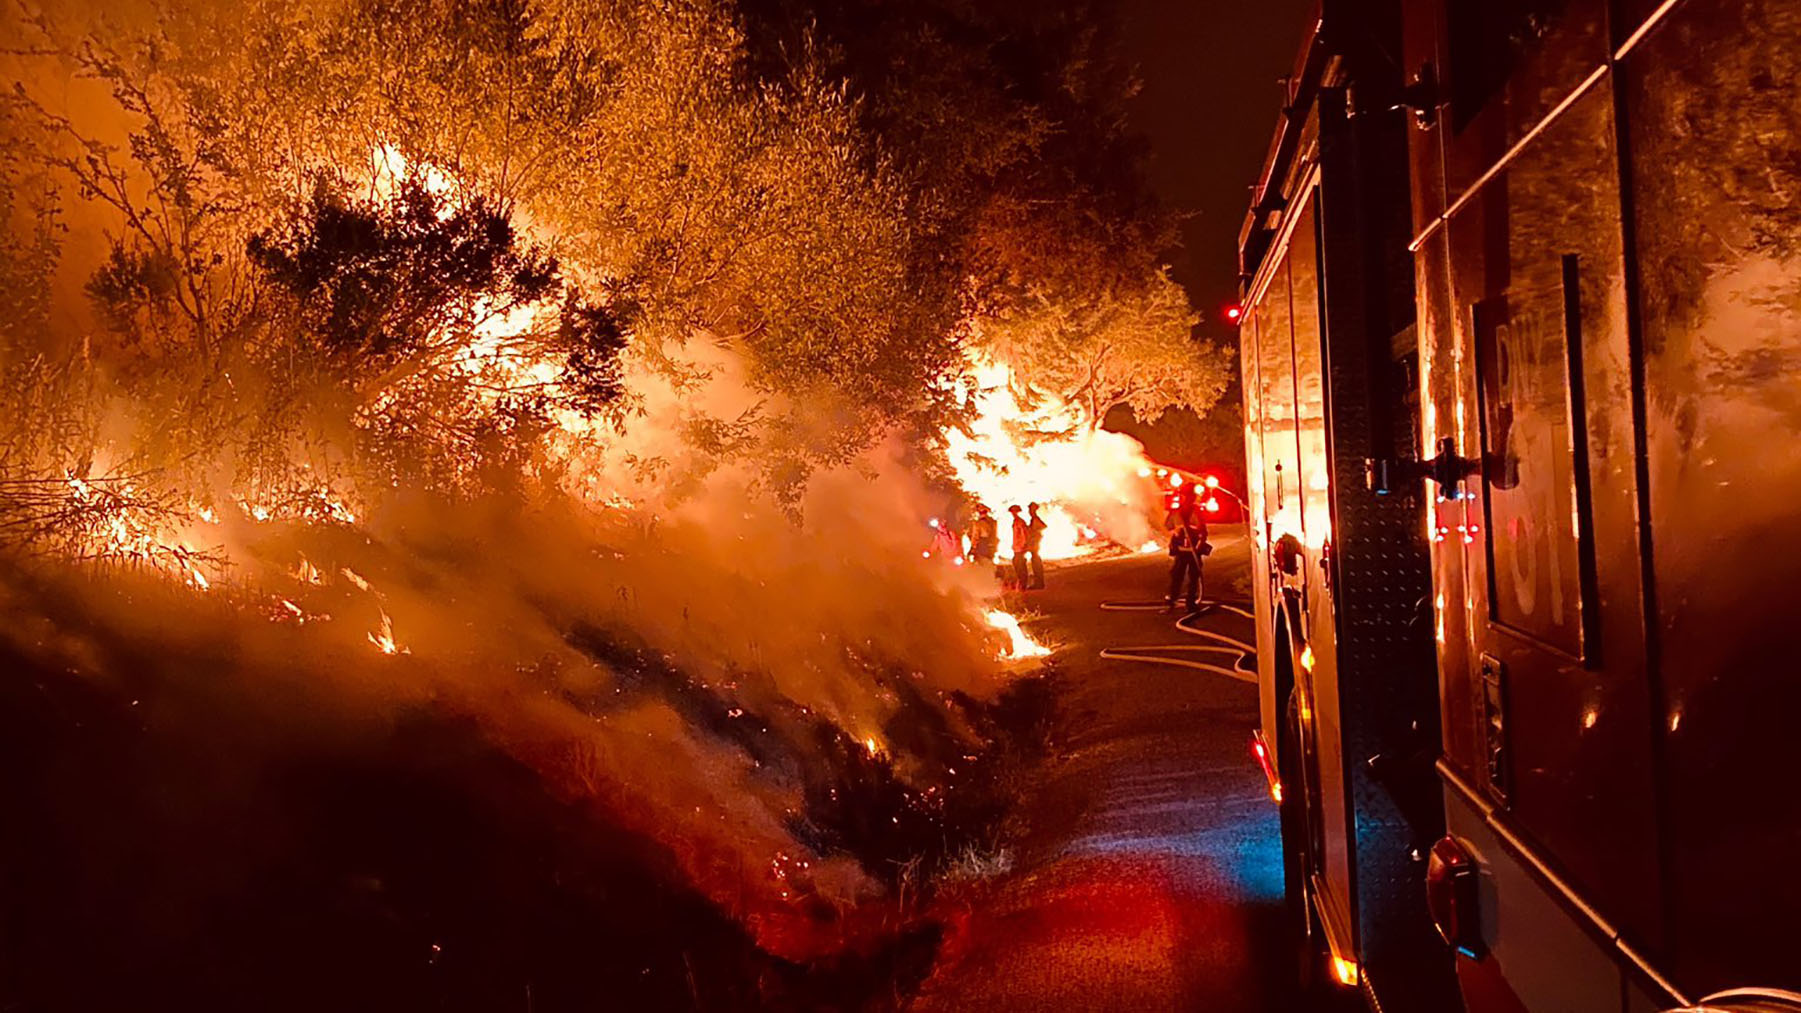 Fires burn in San Mateo County, California, on August 24, 2020. Widespread fire activity is continuing, with resulting poor air quality impacting much of Northern California. (CalFire photo)